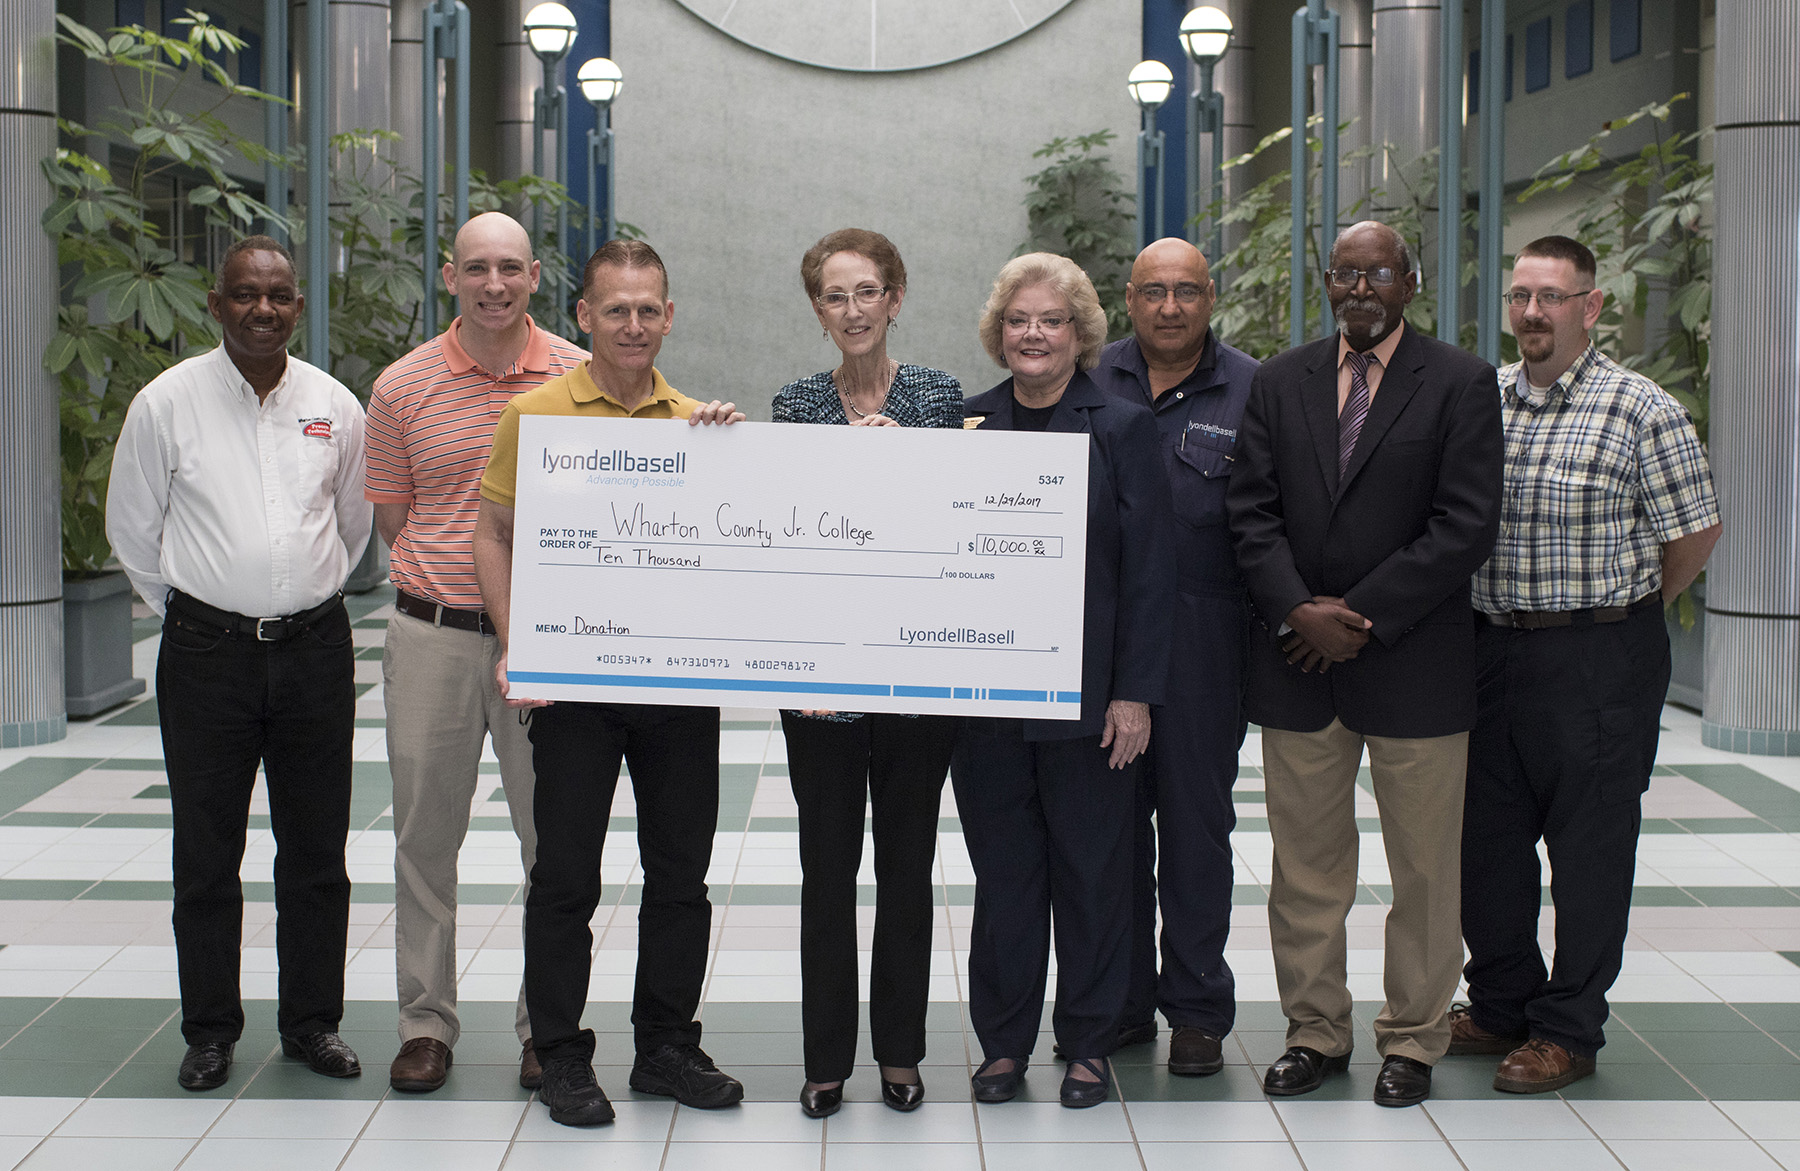 SHOW OF SUPPORT Donation benefits WCJC Process Technology program